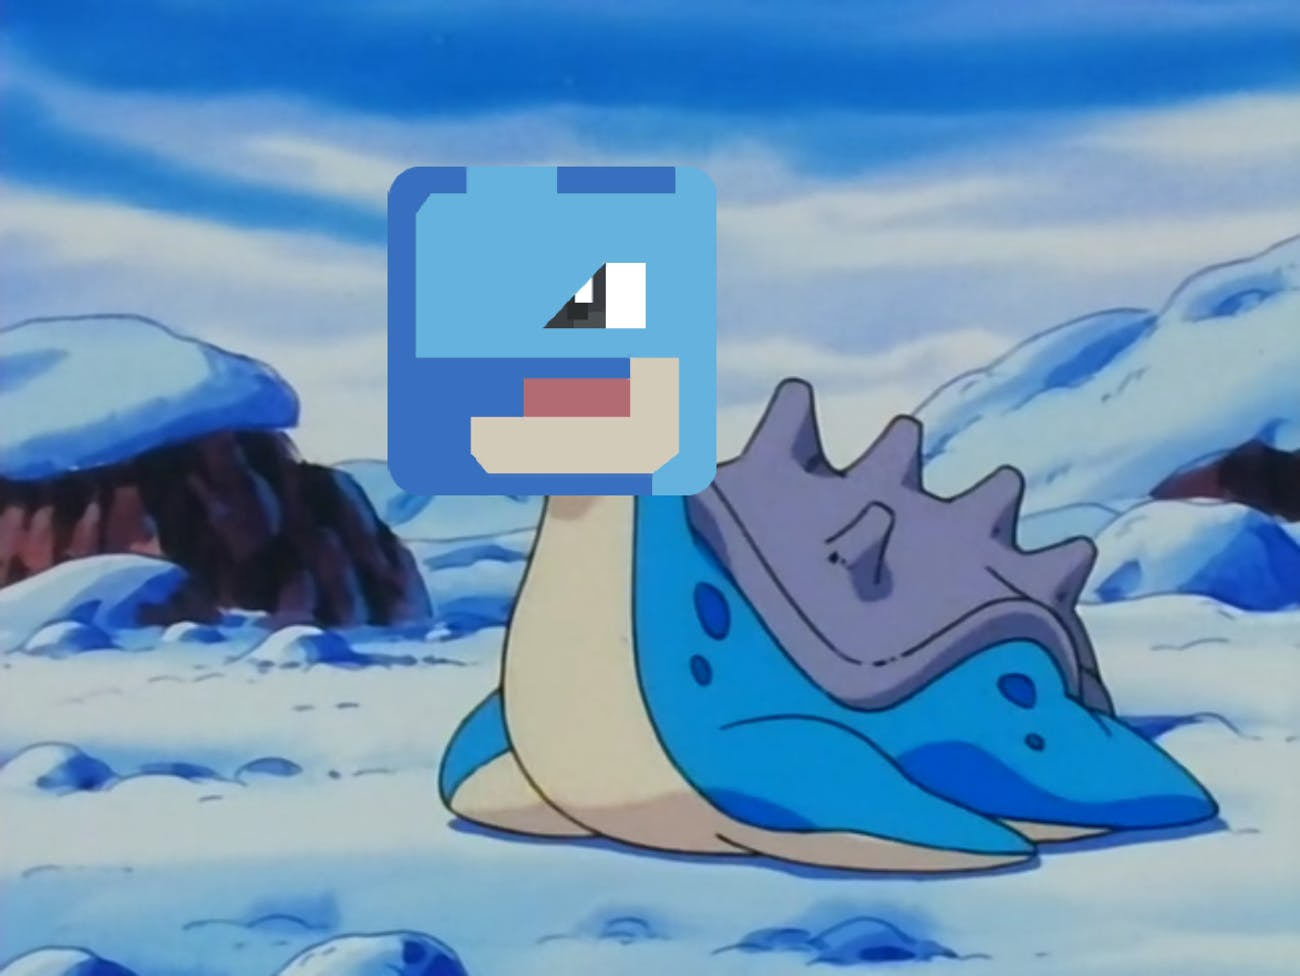 With the right moves, Lapras becomes one of the best Pokémon in 'Pokémon Quest'.